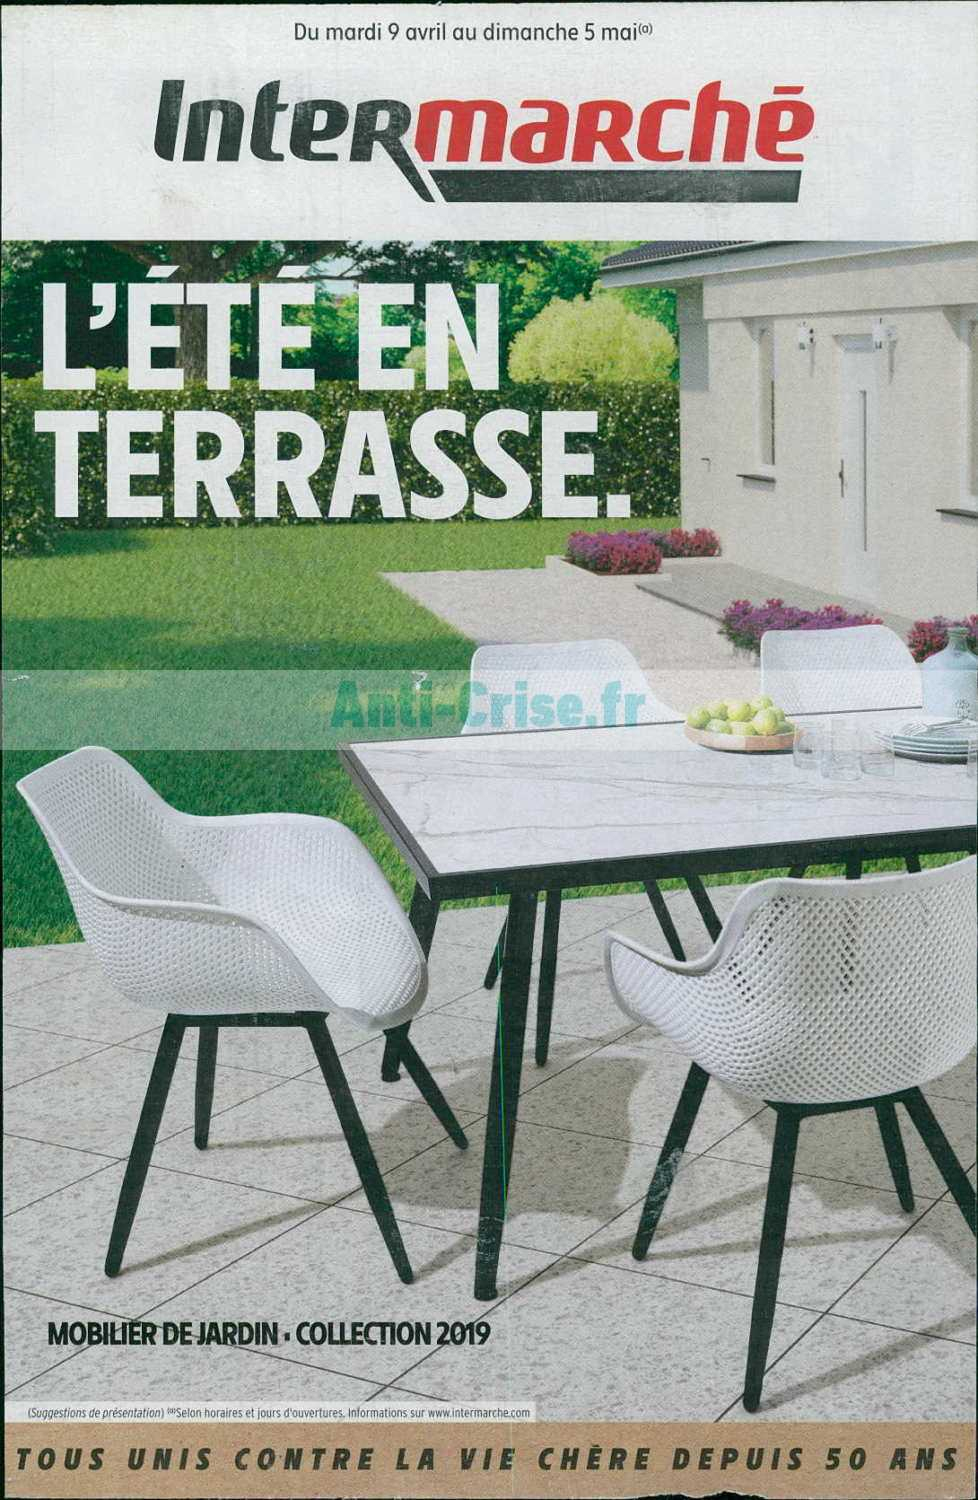 Catalogue Intermarché Du 09 Avril Au 05 Mai 2019 (Terrasse ... destiné Intermarché Table De Jardin